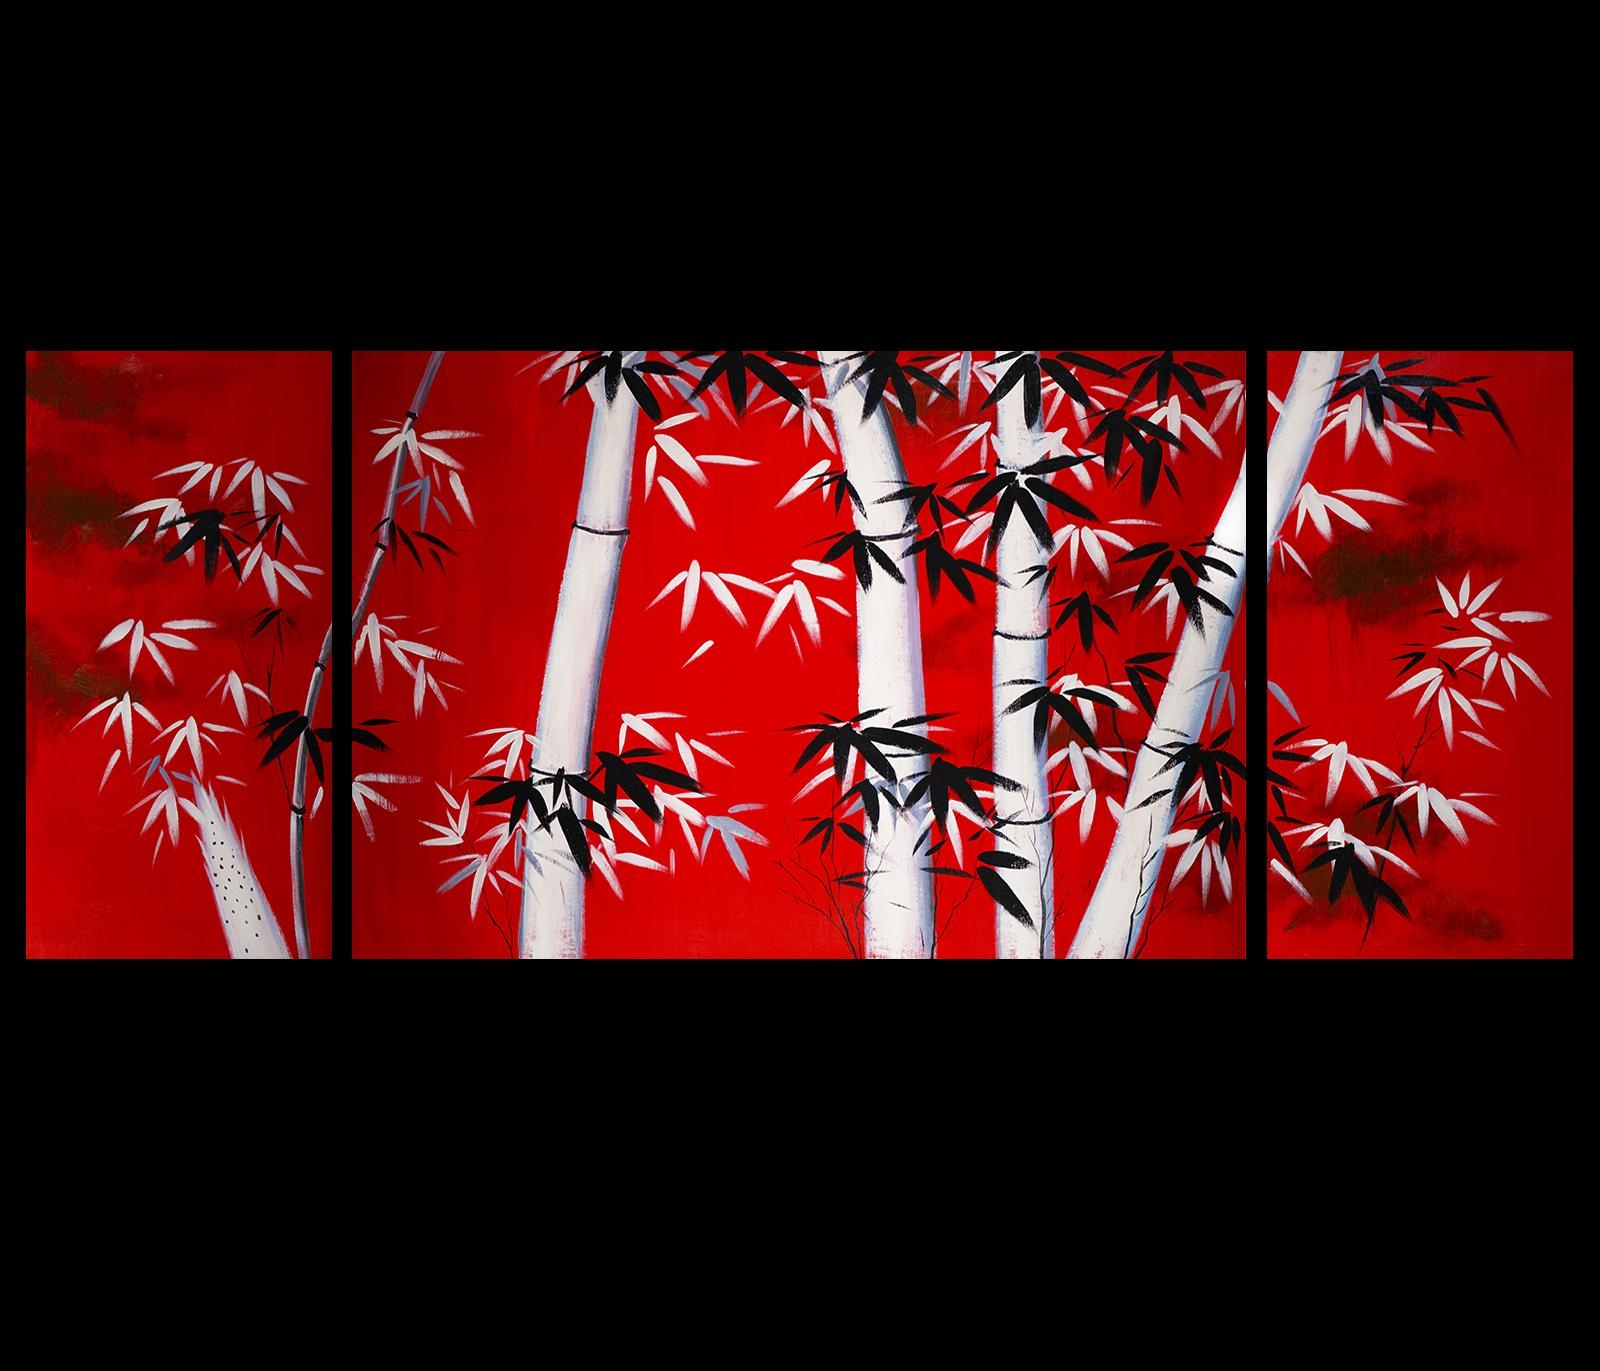 Wall Art Ideas Design : Soniei Japanese Wall Art Canvas Cherry Pertaining To Japanese Wall Art Panels (Image 20 of 20)